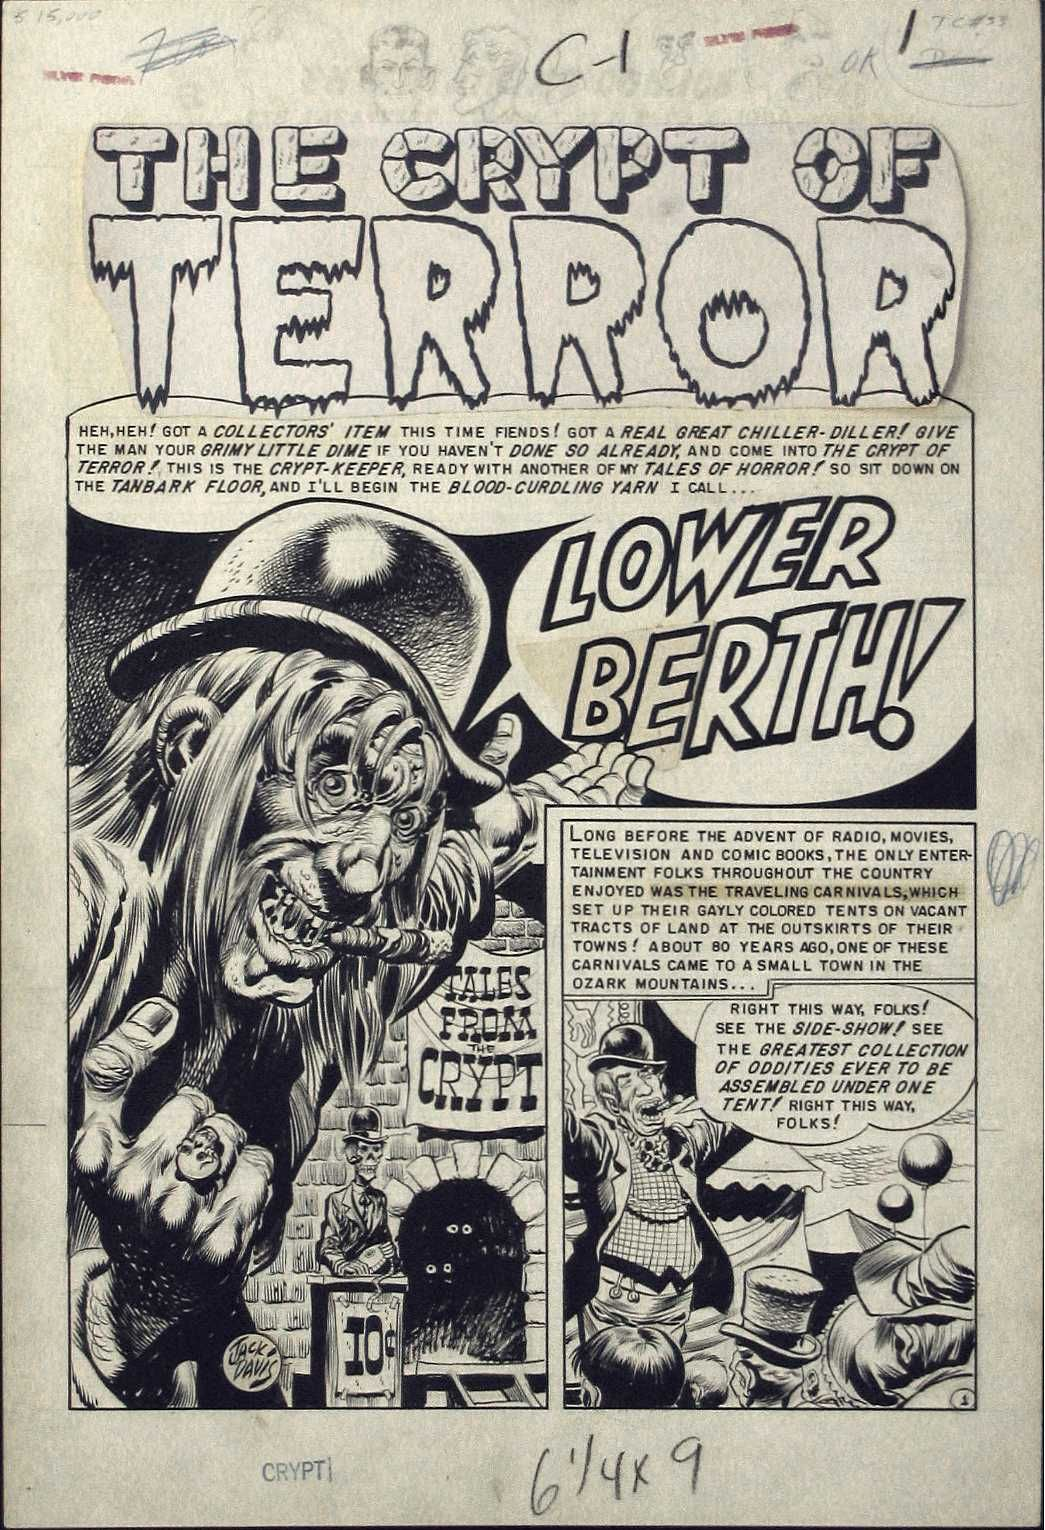 "Tales from The Crypt #33-""Lower Berth"" splash page. The story told the origin of the Crypt Keeper..The Old Witch's origin was told in Haunt Of Fear #14 in the story ""A Little Stranger""..No origin was ever done for The Vault Keeper by EC."